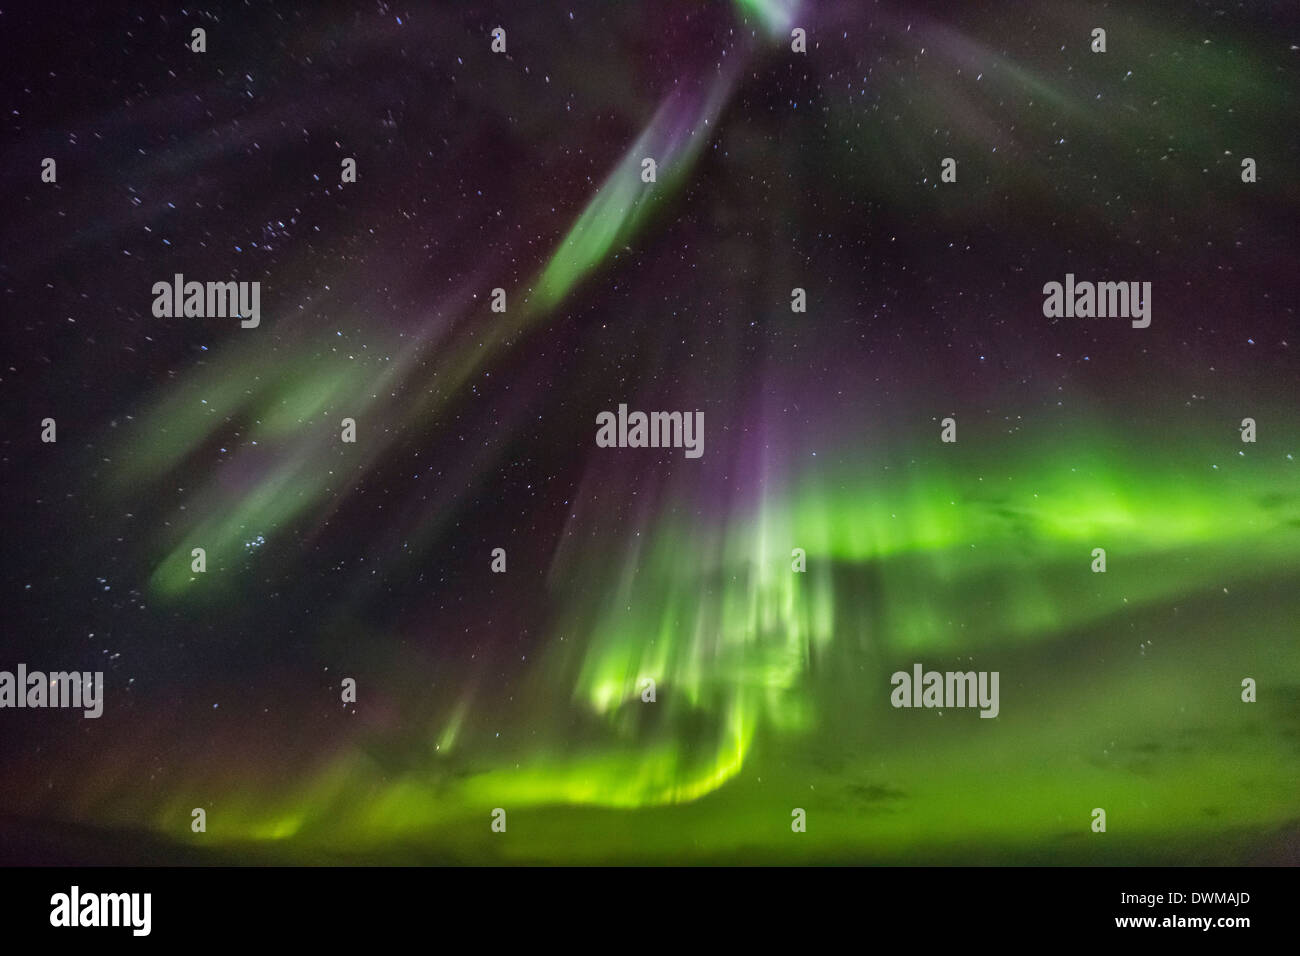 Aurora borealis (Northern Lights) above the Lindblad Expeditions ship in Hudson Strait, Nunavut, Canada - Stock Image